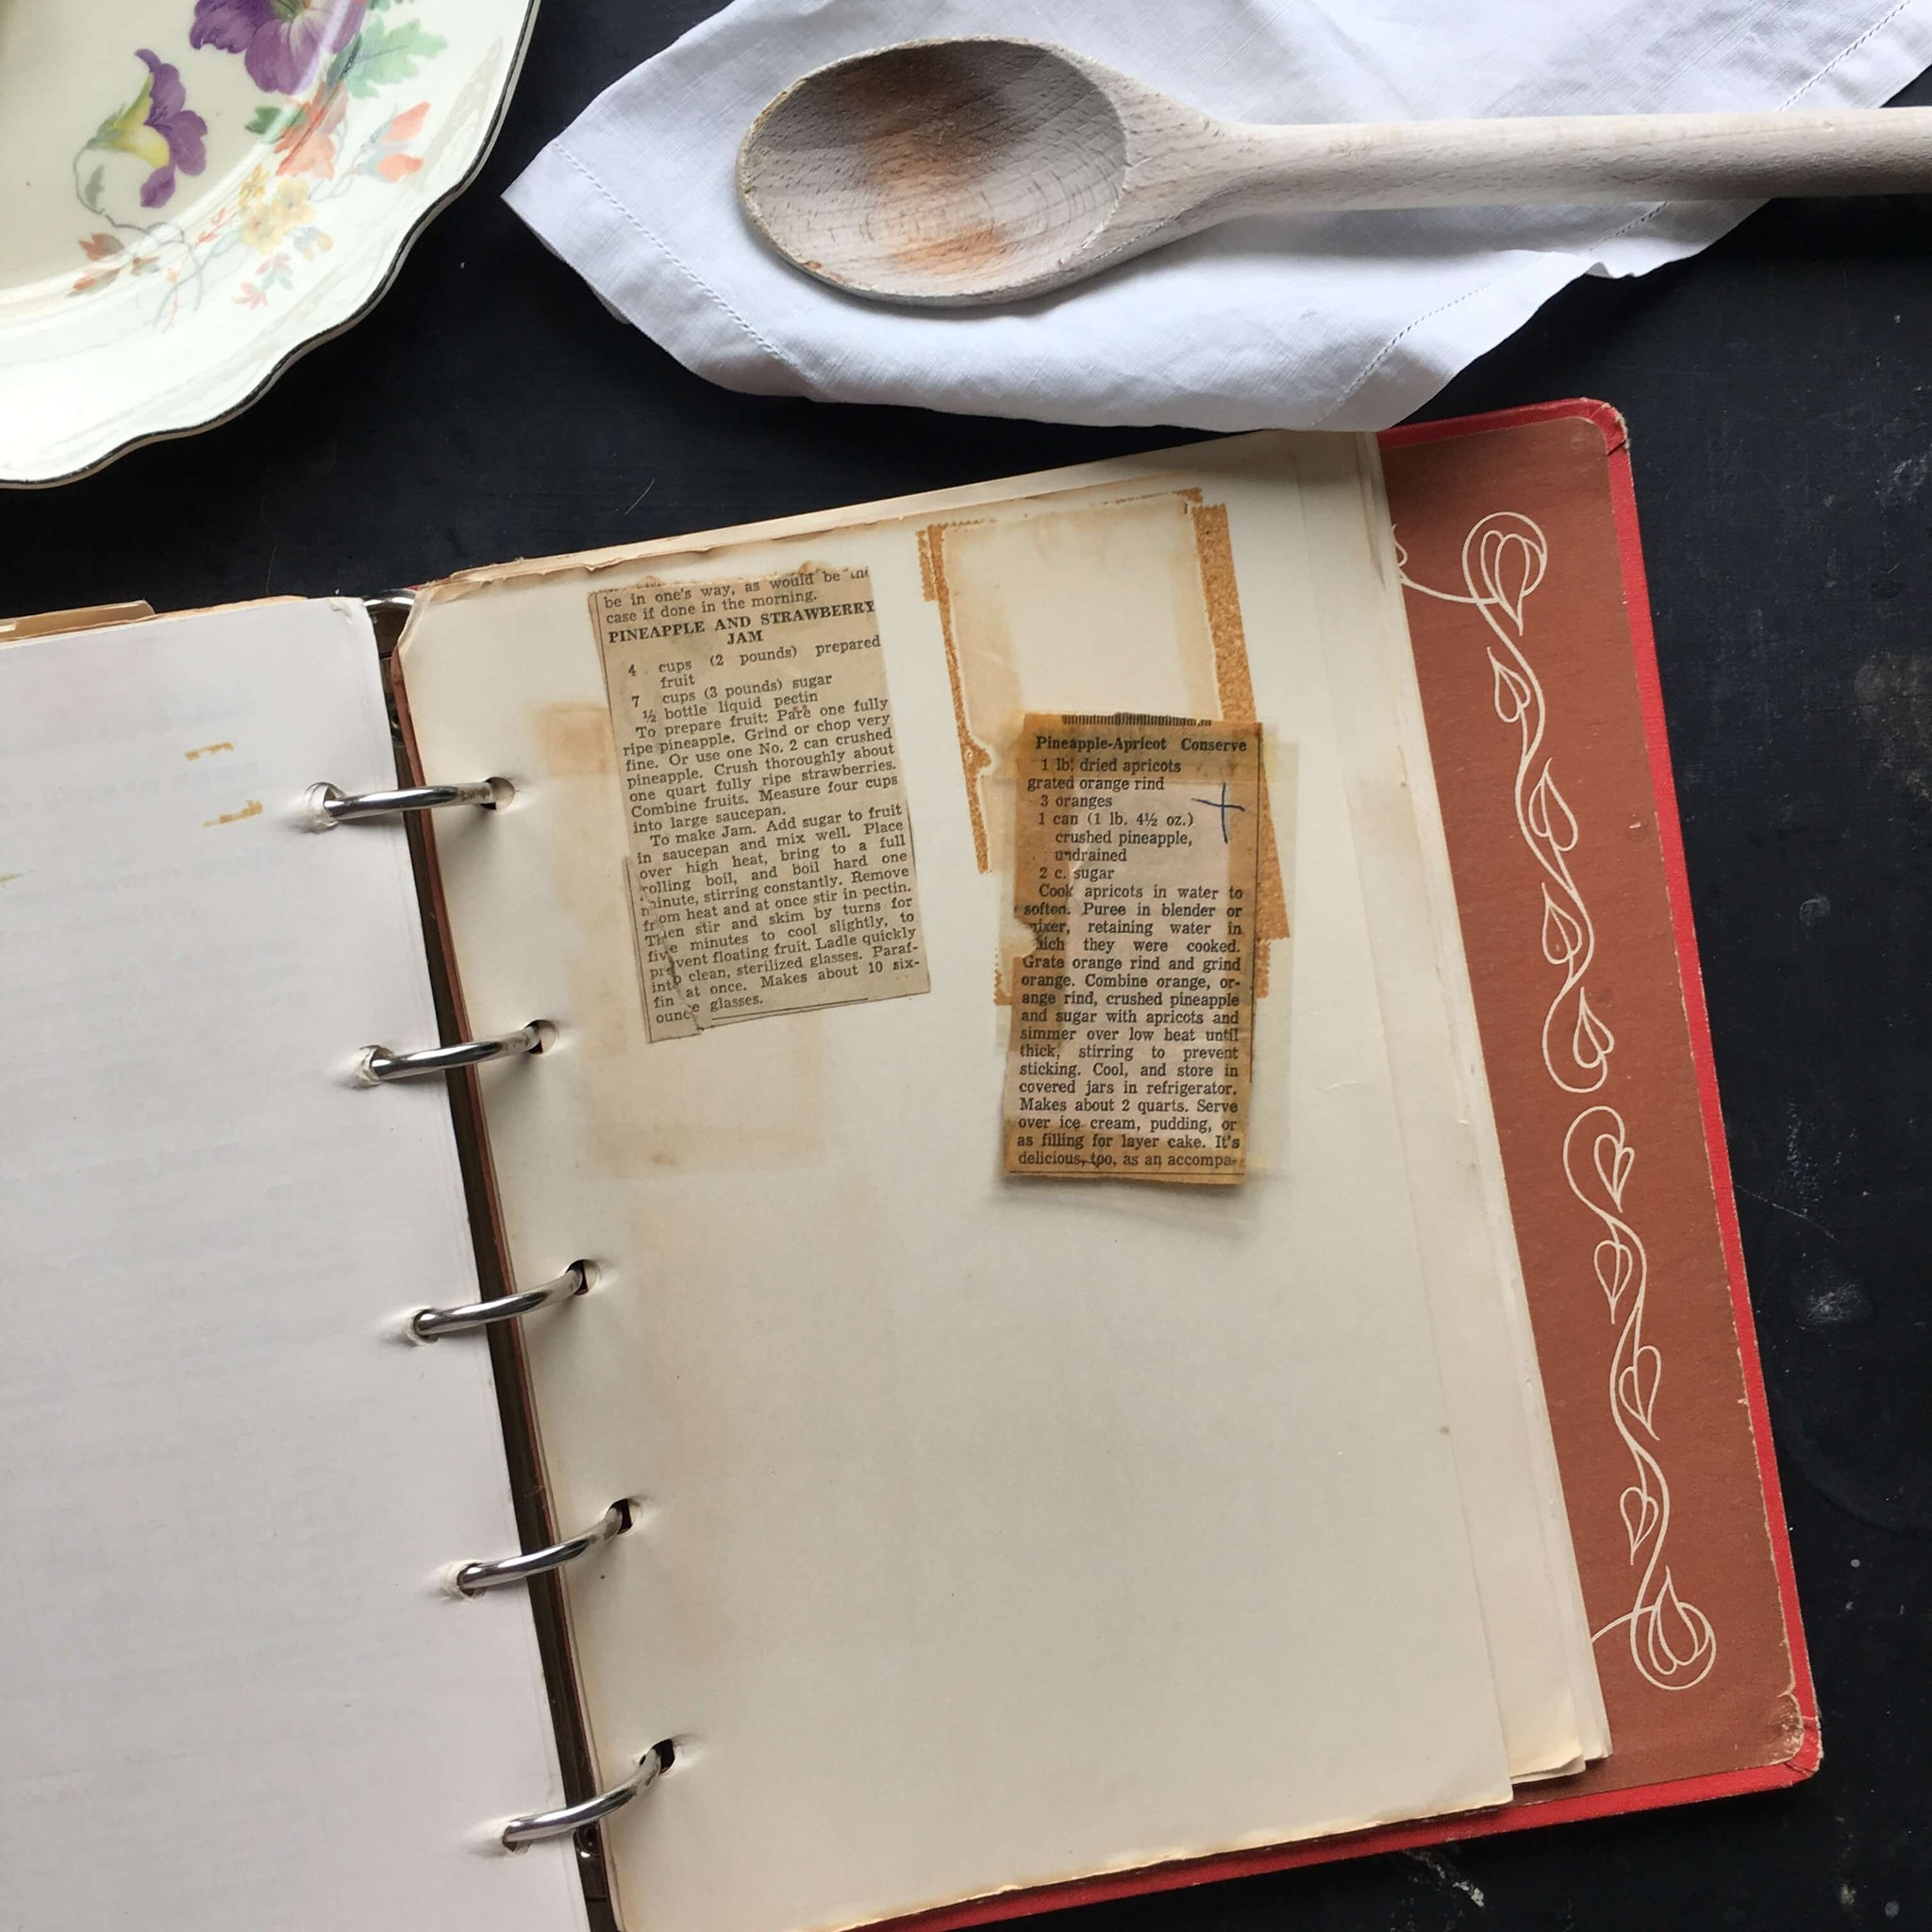 Betty Crocker's Picture Cook Book - 1950 First Edition Fourth Printing with Additional Clipped & Handwritten Recipes